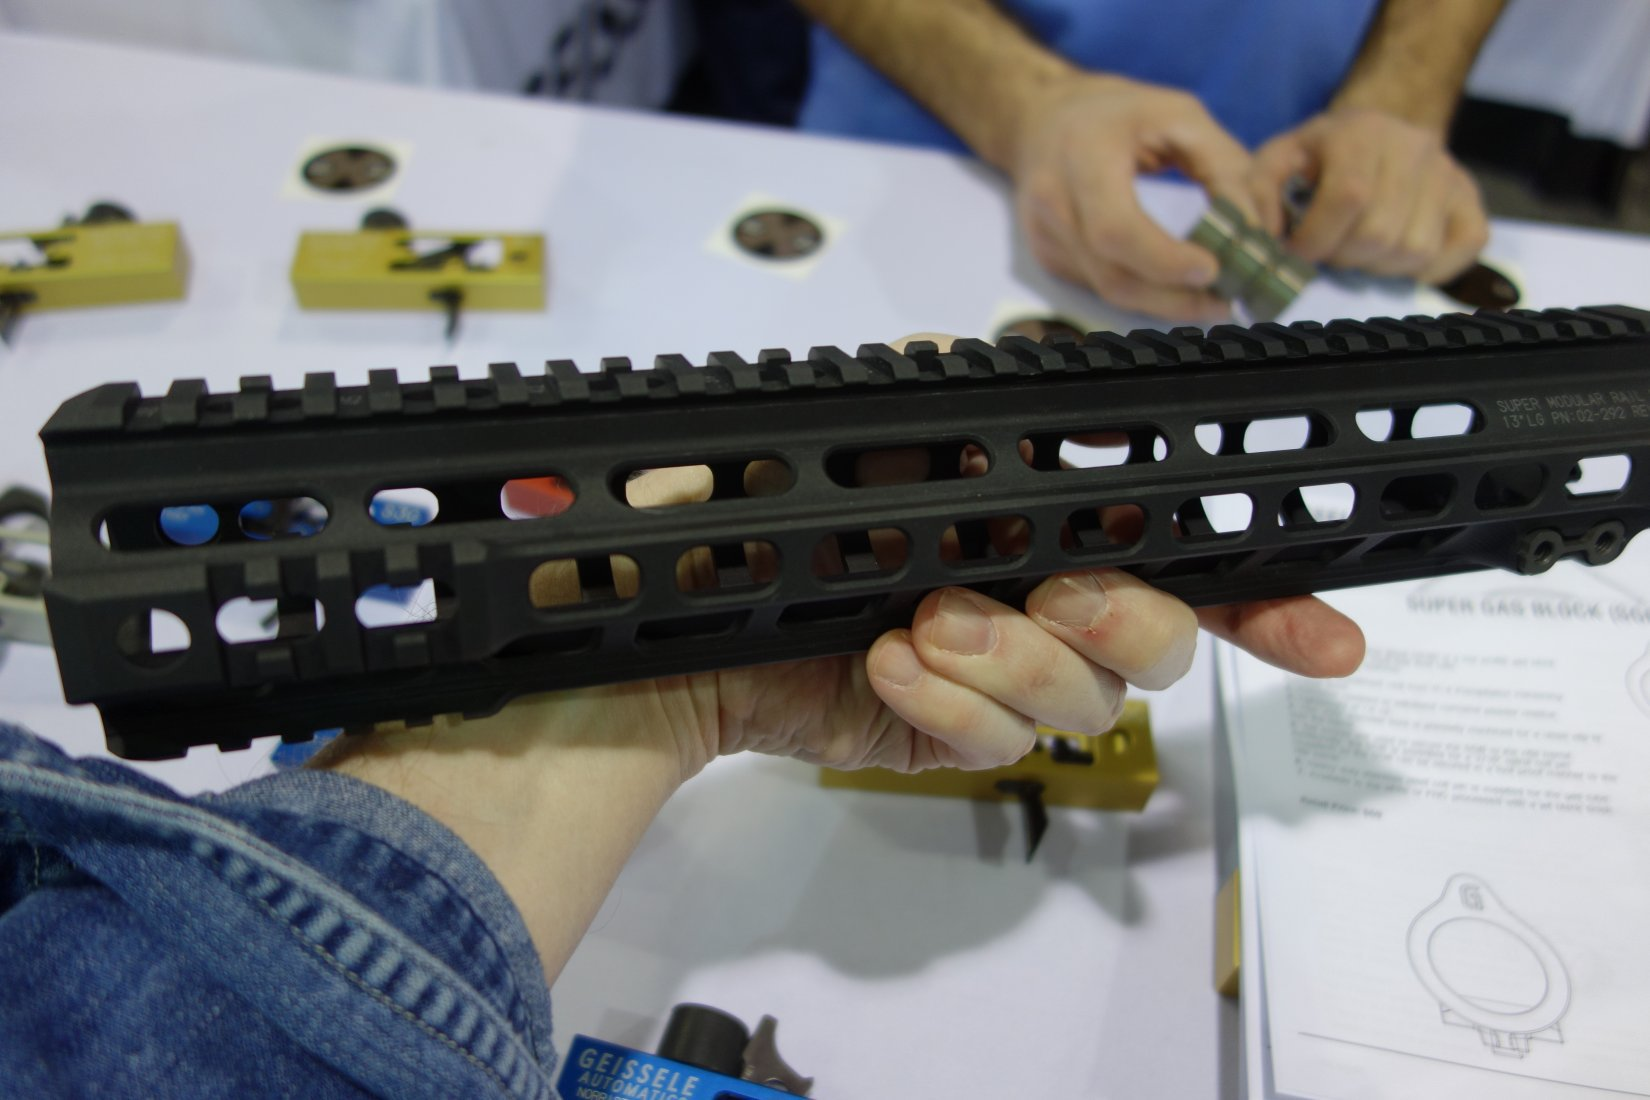 Geissele Automatics Super Modular Rail MK4 SMR 13 inch Tactical Handguard Lightweight Modular Rail System with KeyMod Universal Interface System SHOT Show 2013 David Crane DefenseReview.com DR 1 Geissele Super Modular Rail MK4 (SMR) 13/9.5 Tactical Handguard/Lightweight Rail System with Proprietary Barrel Nut Mounting System and Nitrided Lo Pro Super Gas Block for the Tactical AR 15 Carbine (Video!)